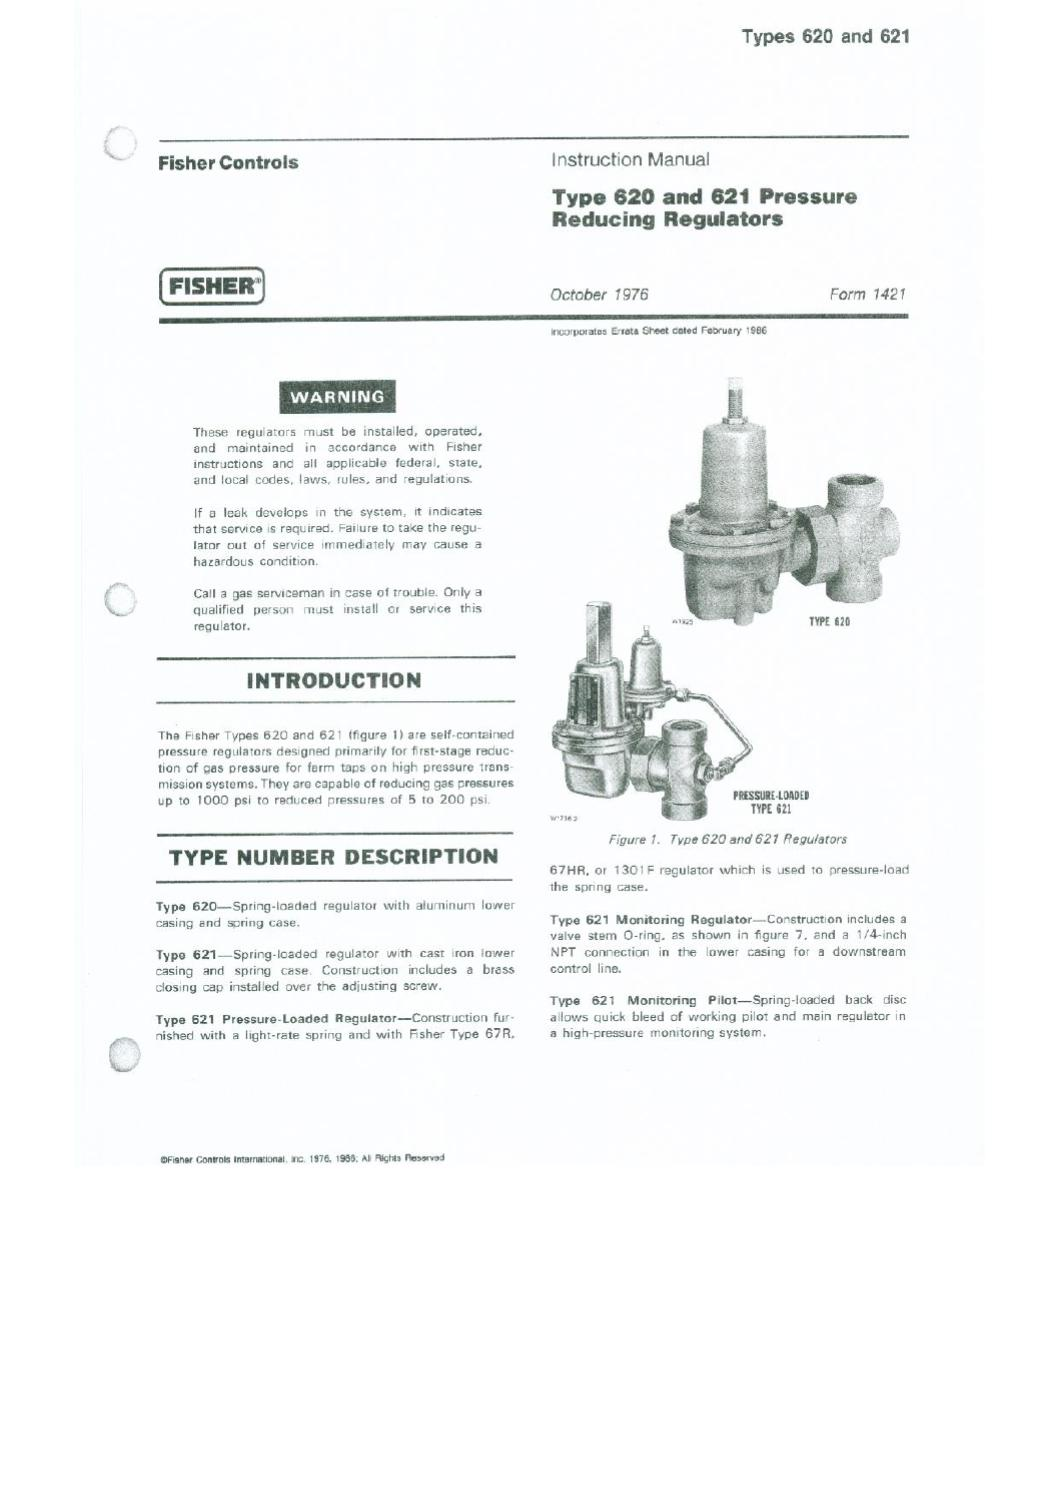 620 Instruction Manual by RMC Process Controls